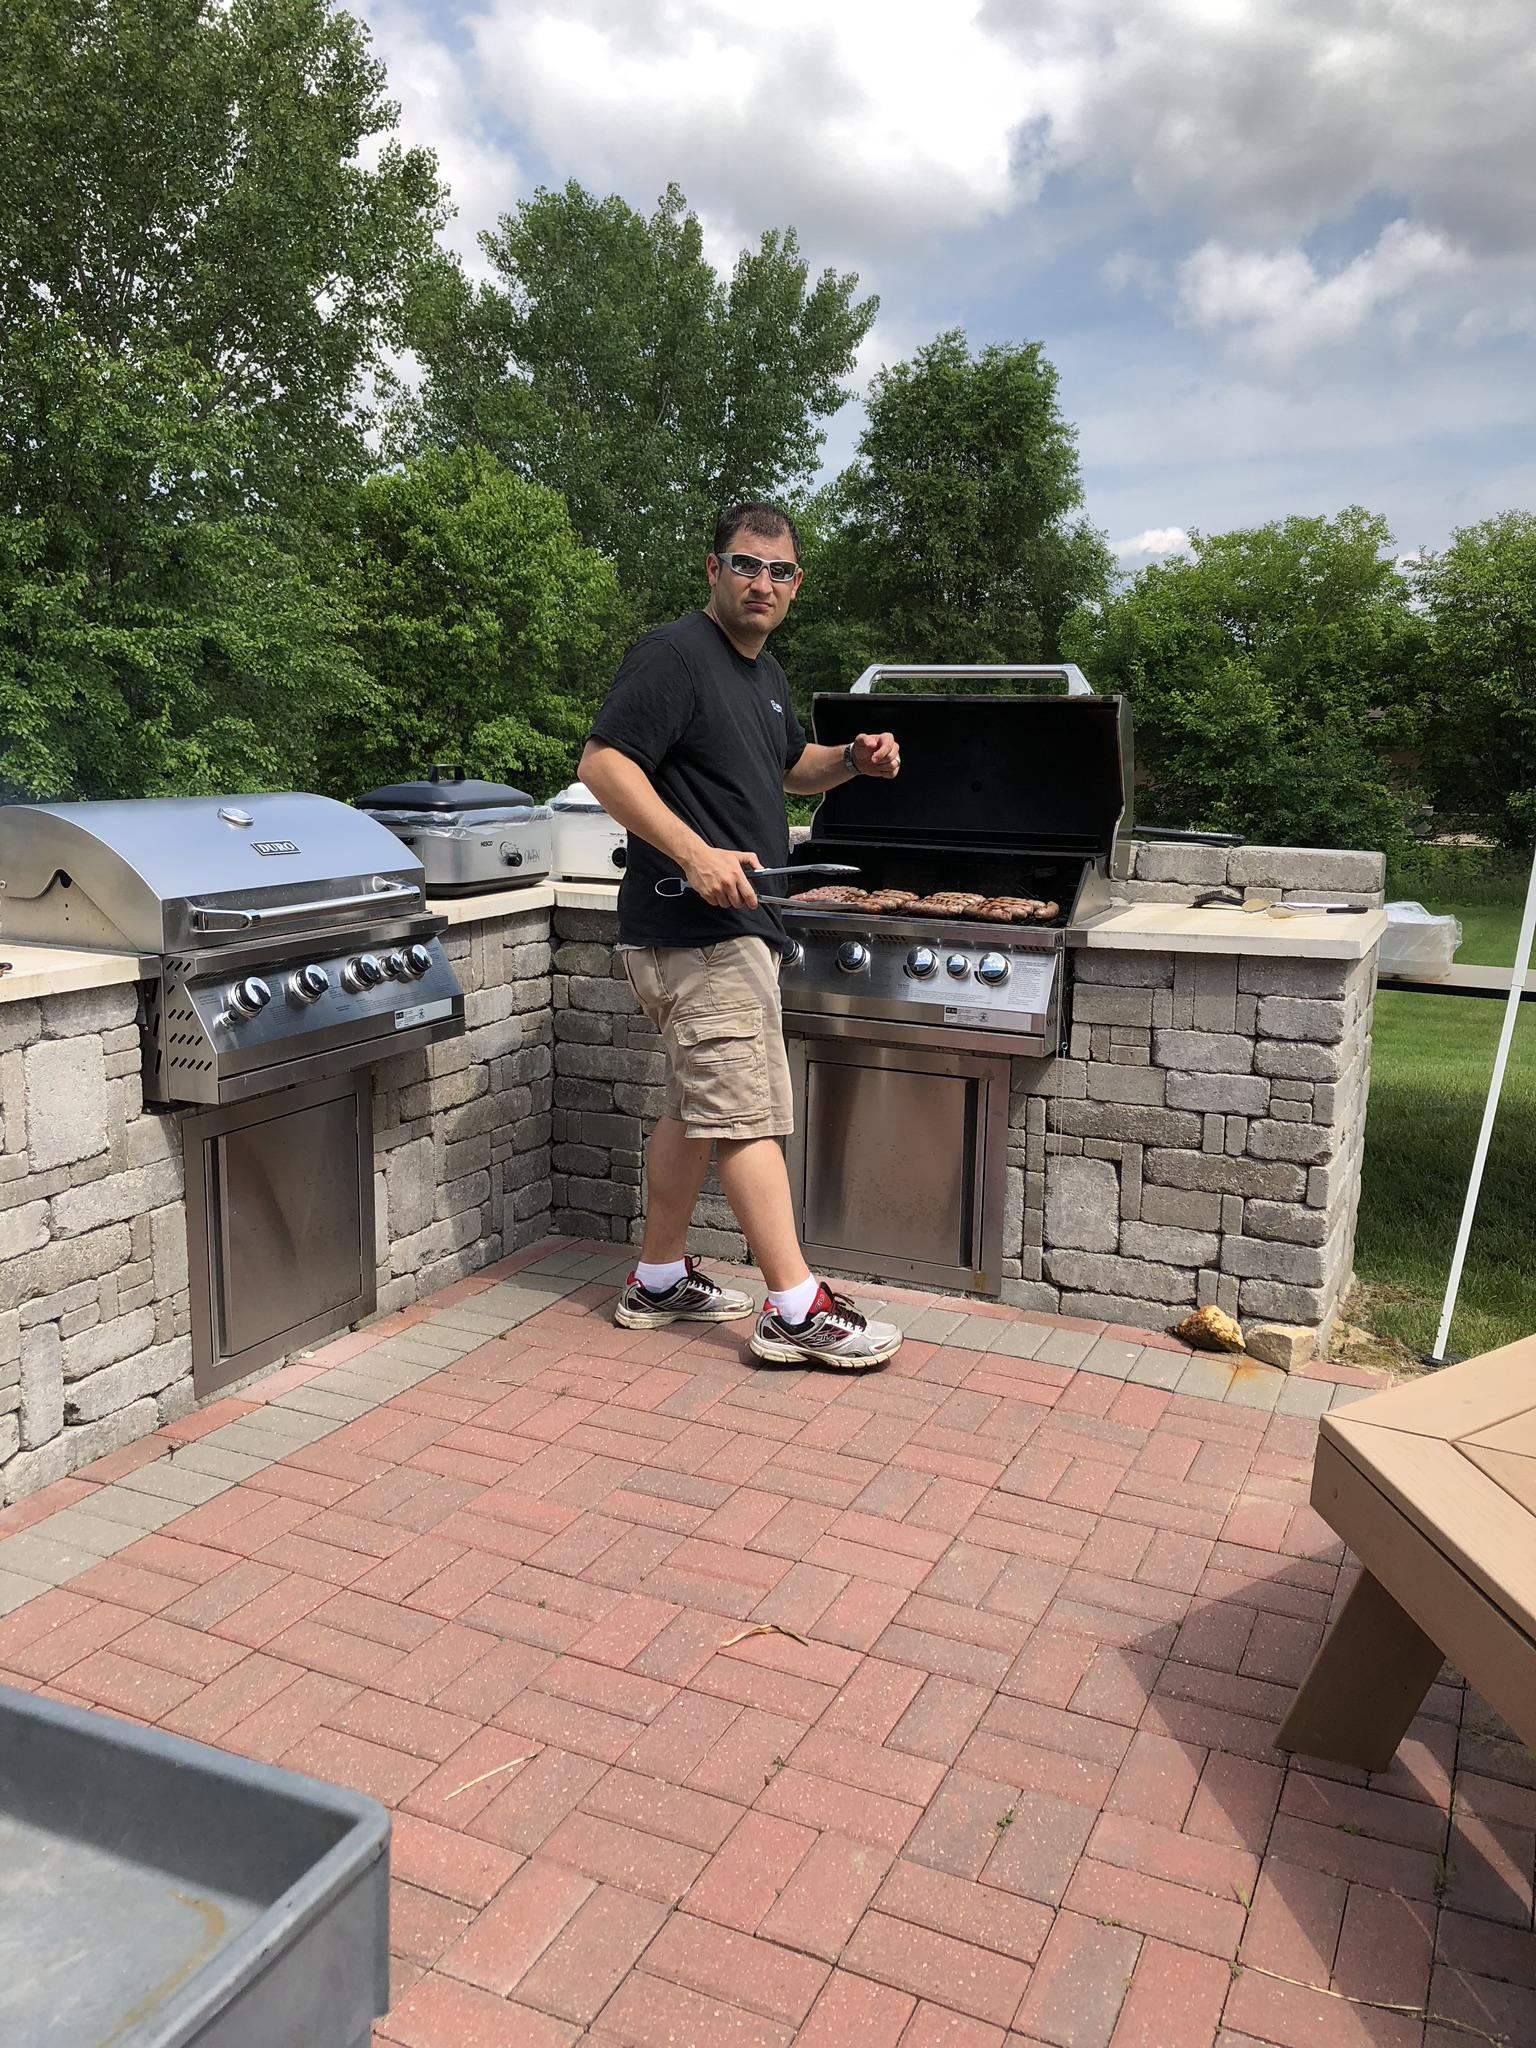 Sauk City employee grilling on the back patio